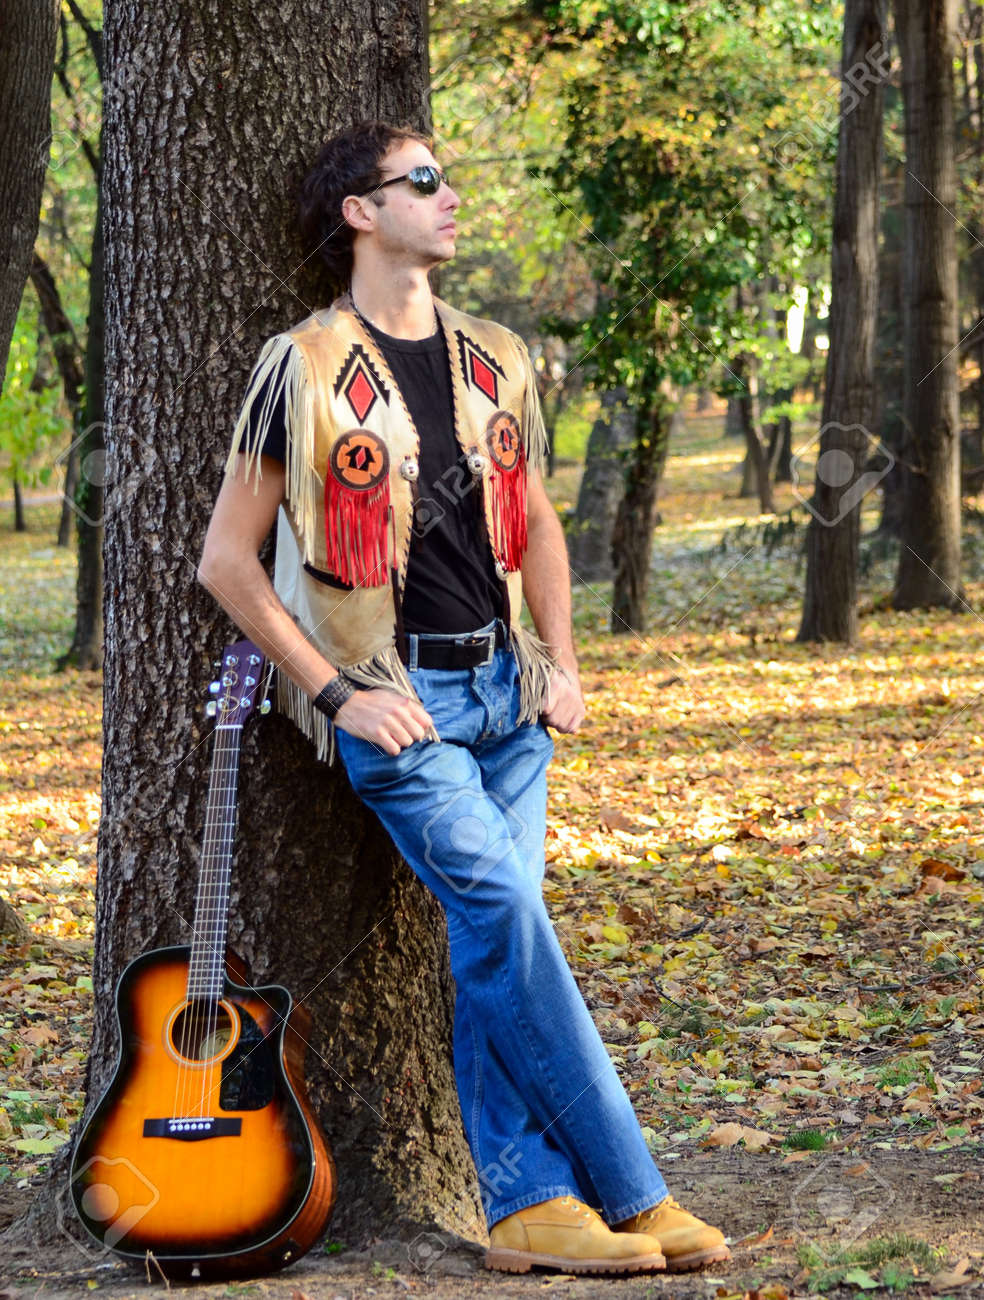 Man With Guitar Posing Stock Photo Picture And Royalty Free Image